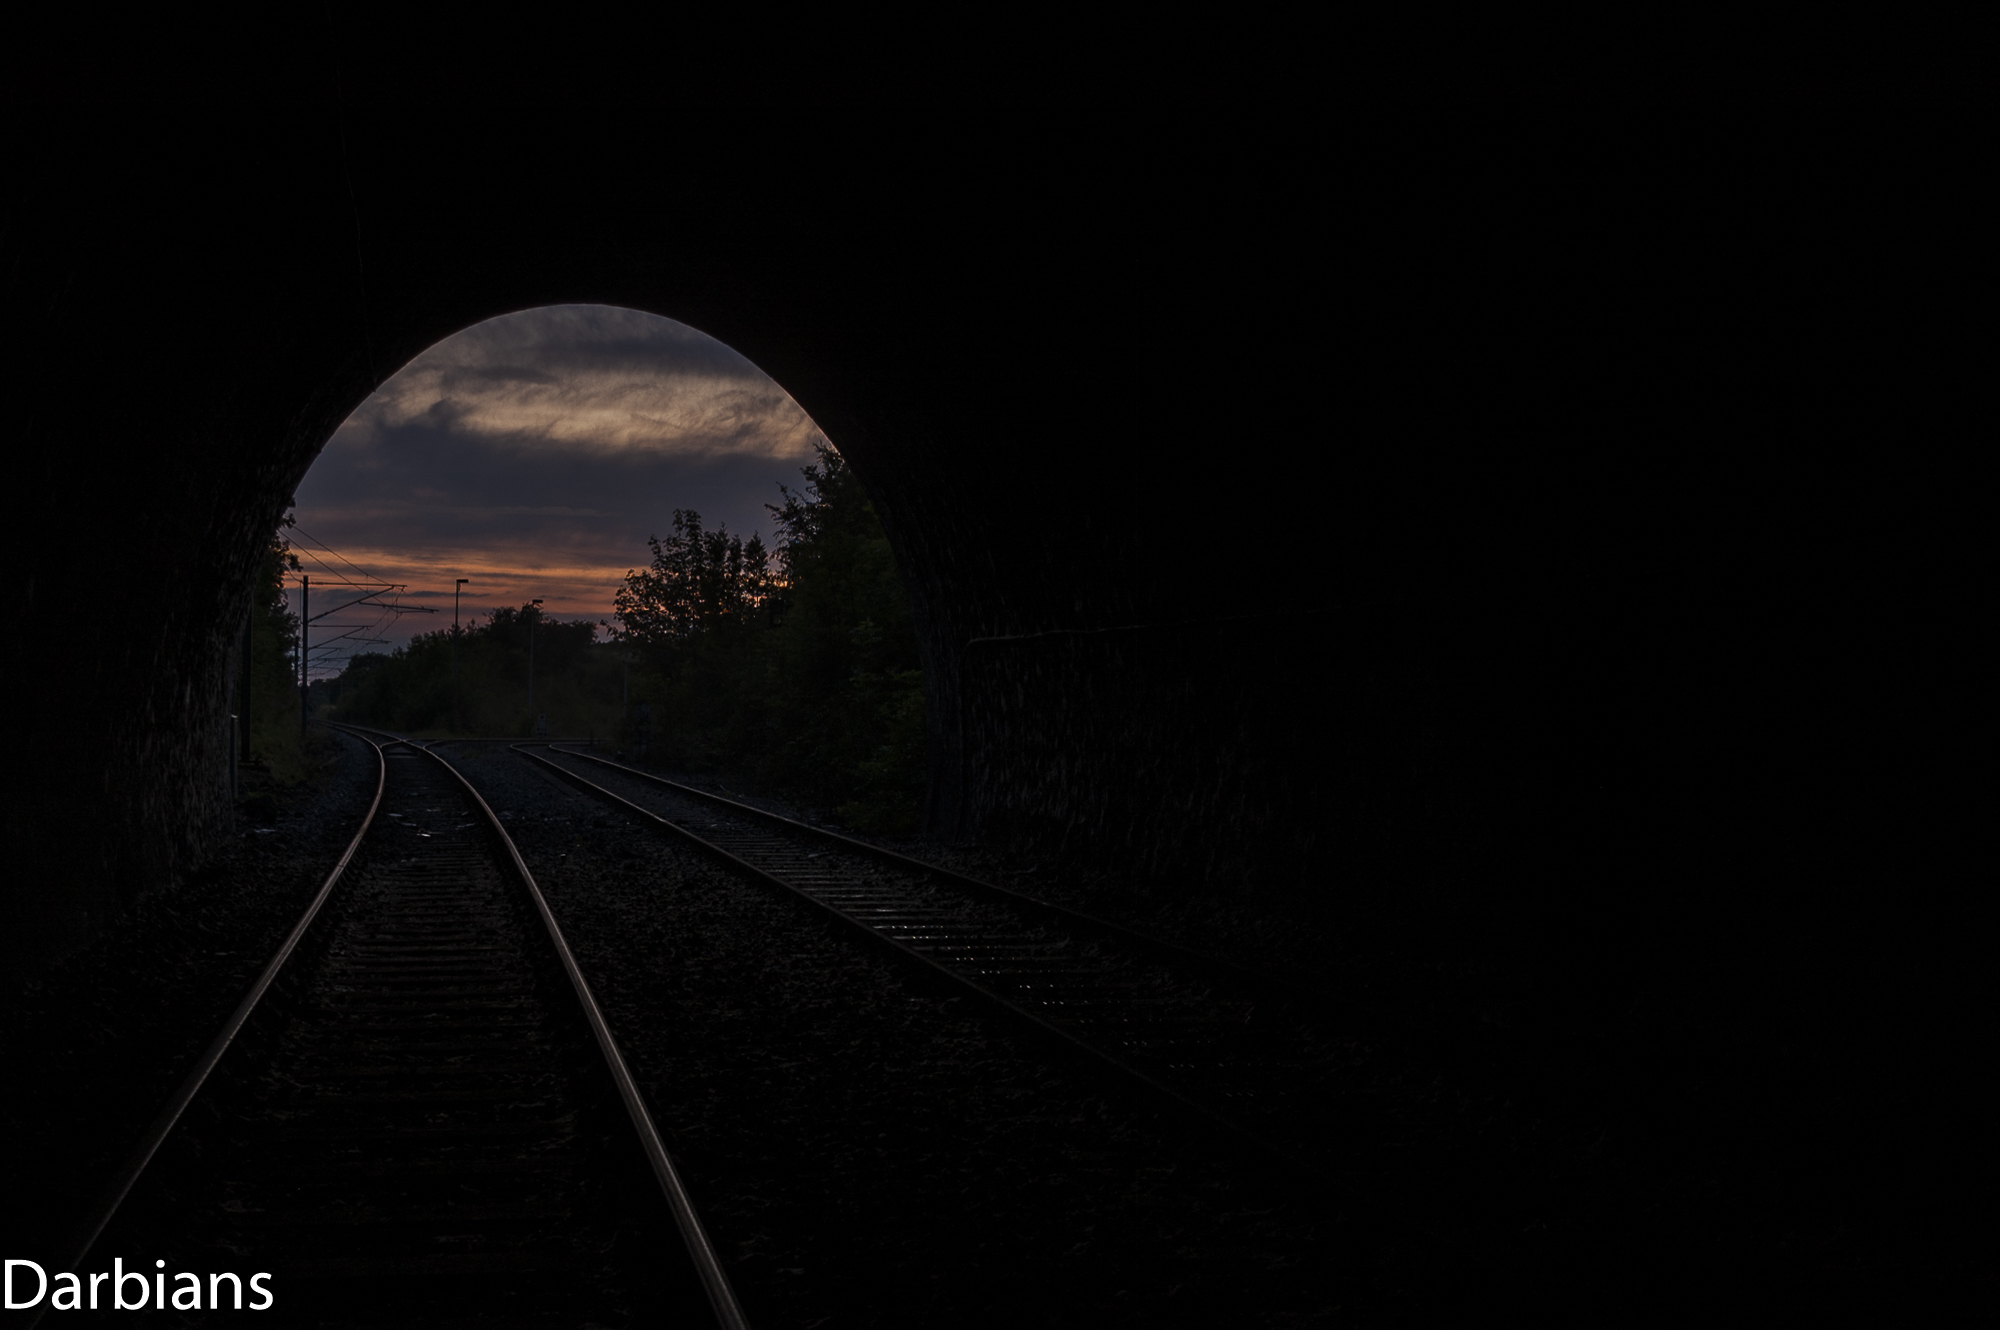 Old Dalby Test Track. Asfordby Tunnel, sunset